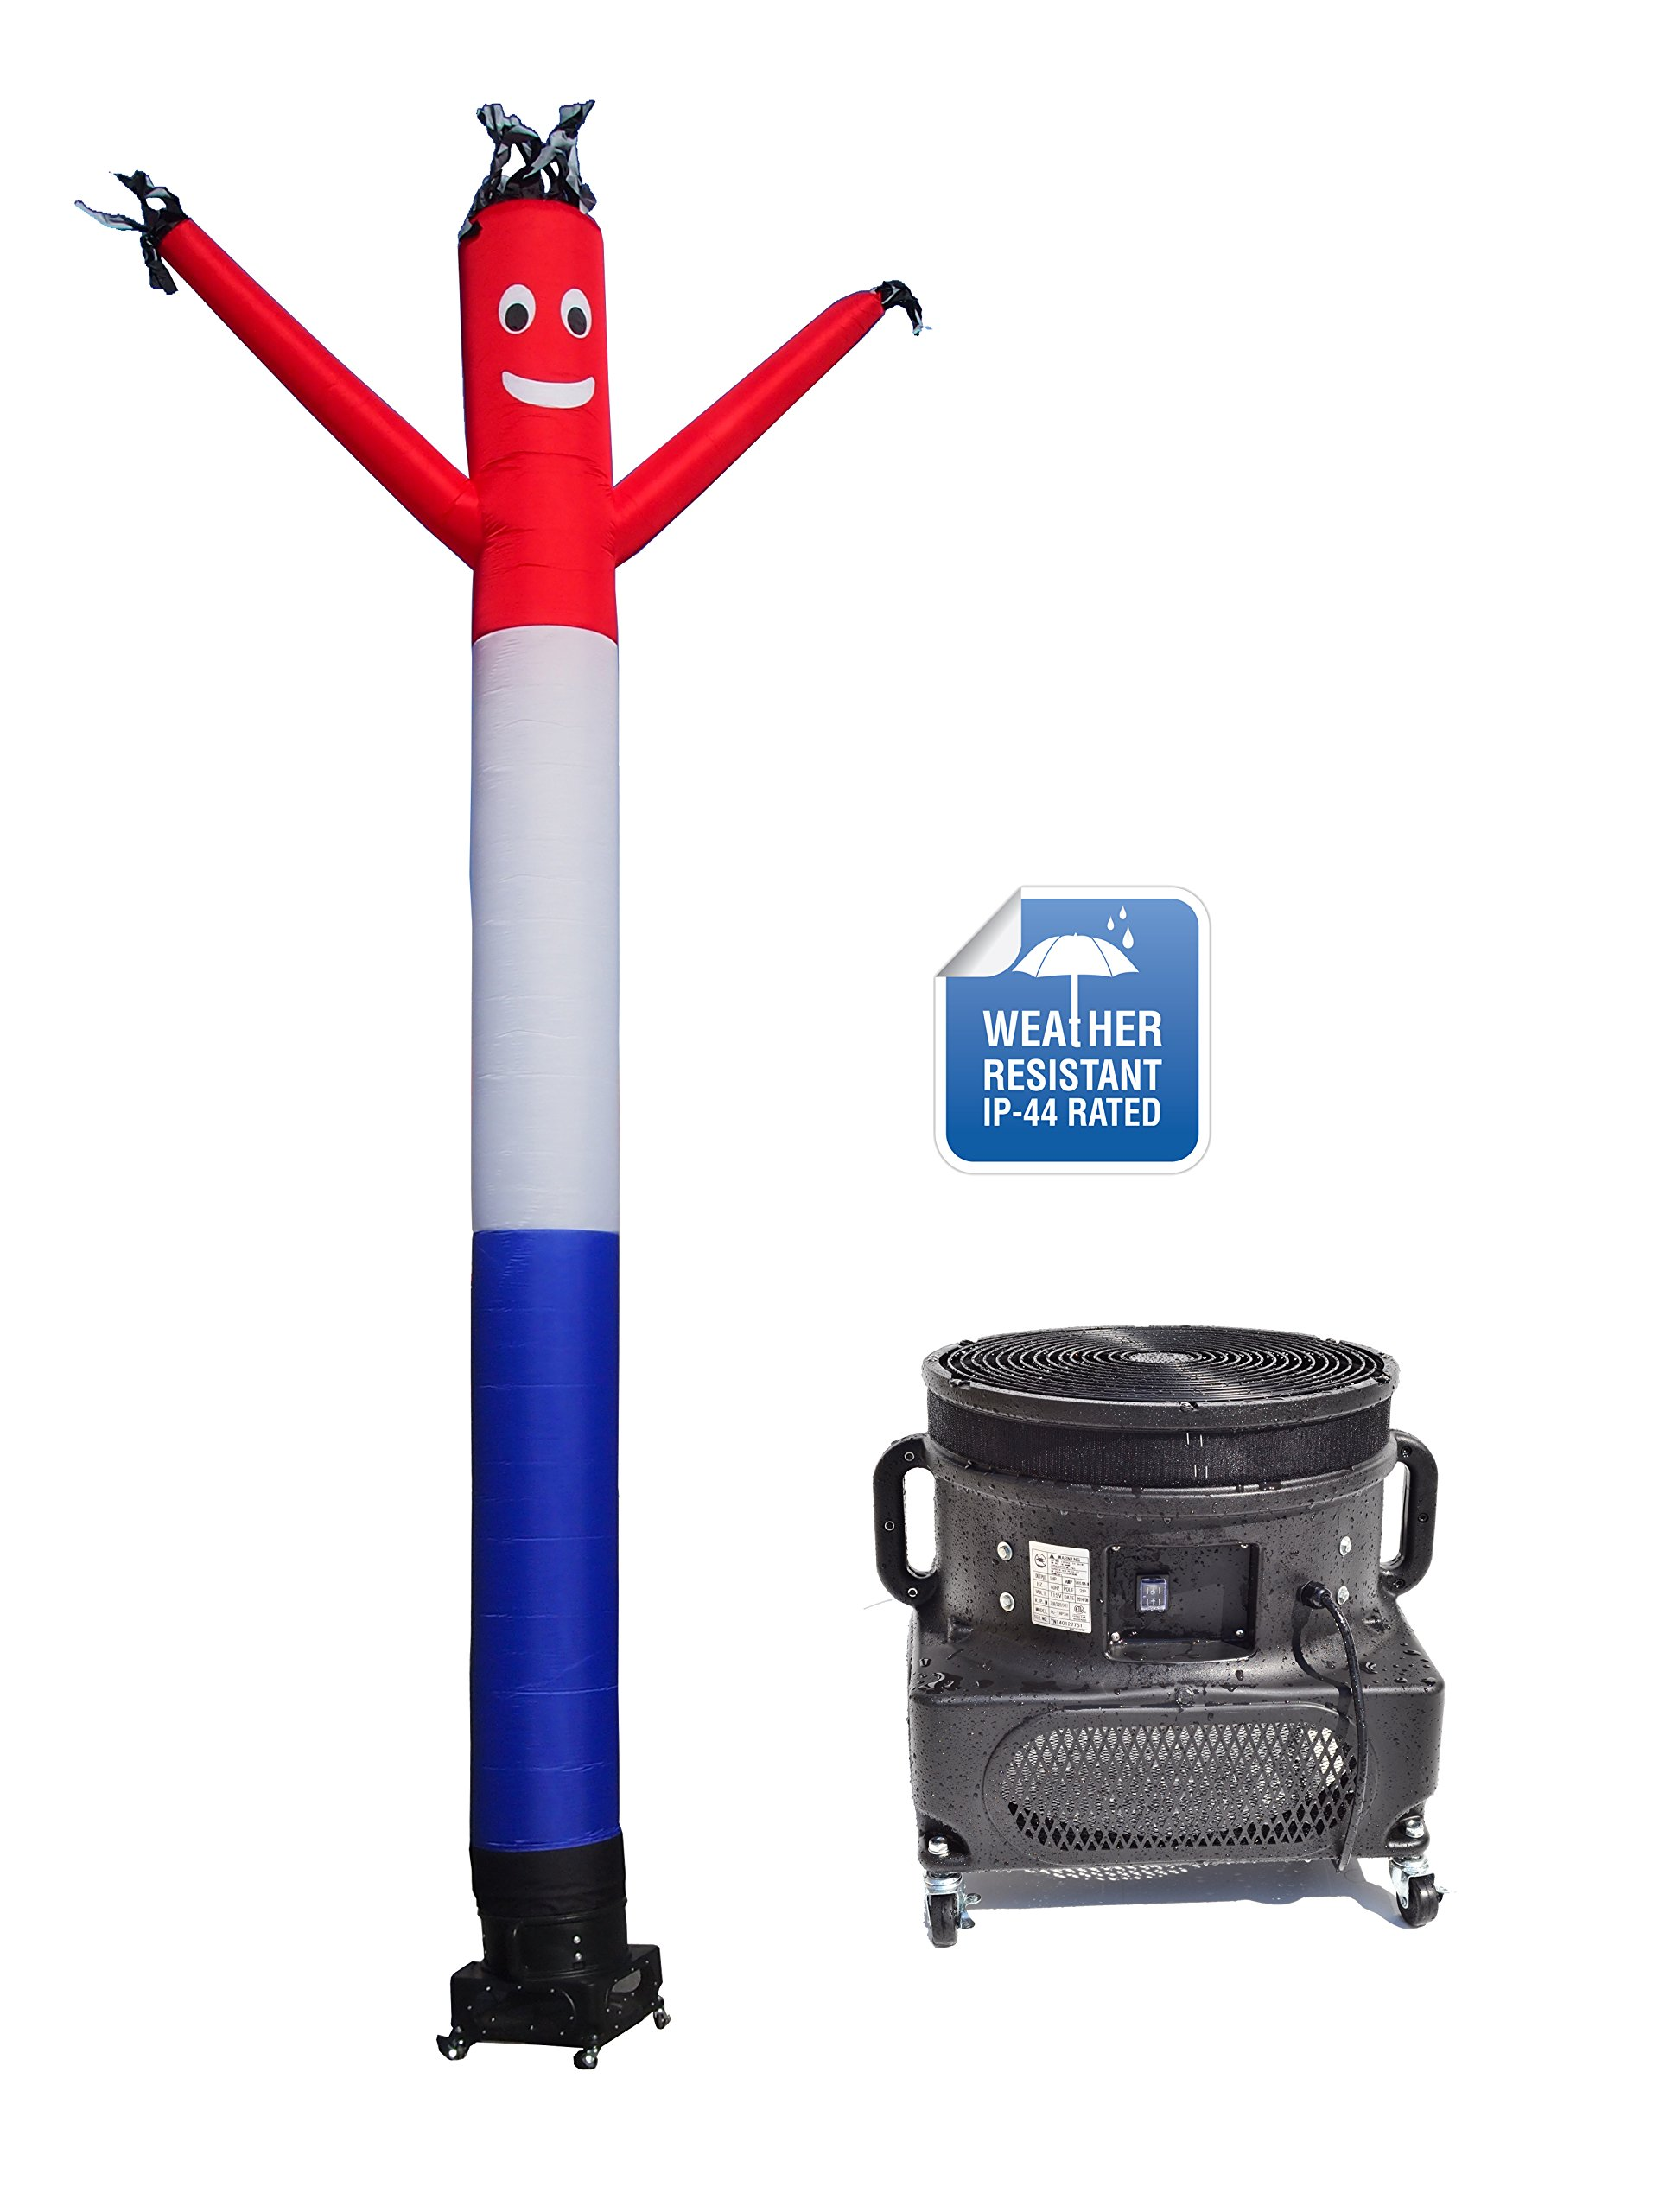 LookOurWay Air Dancers Inflatable Tube Man Complete Set with 1 HP Weather-Resistant Sky Dancer Blower, 20-Feet, Red/White/Blue